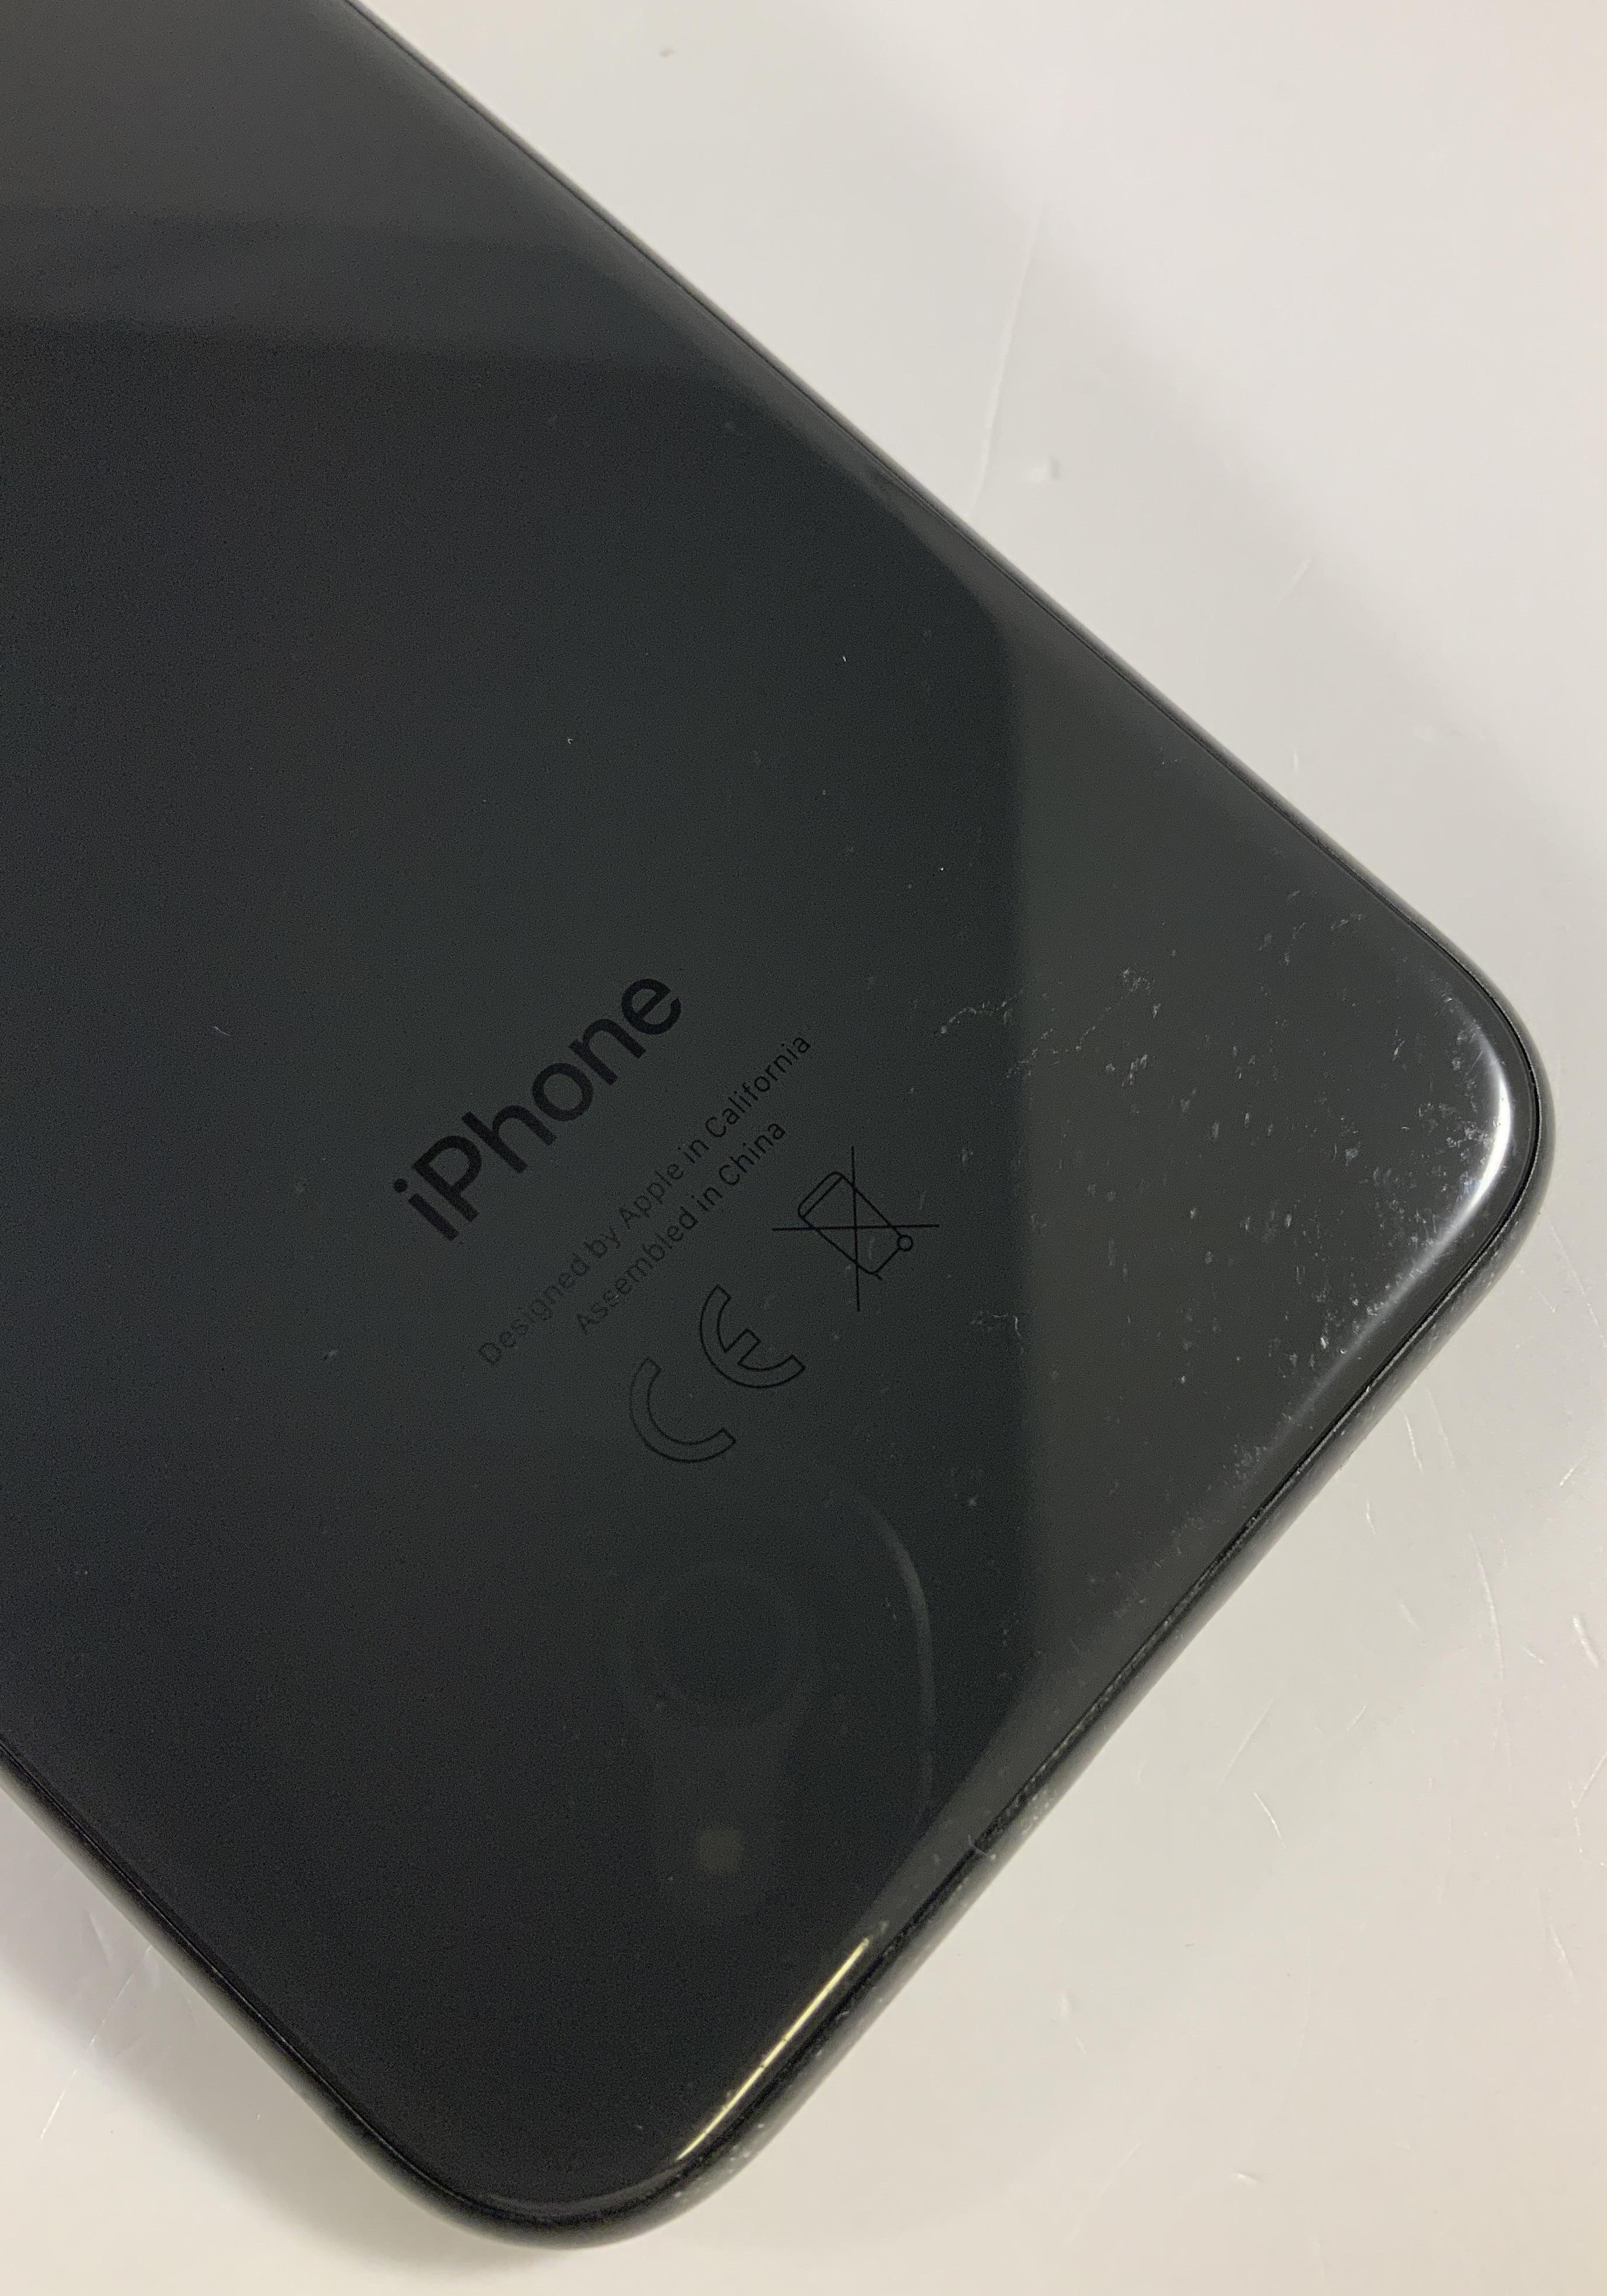 iPhone 8 64GB, 64GB, Space Gray, immagine 3